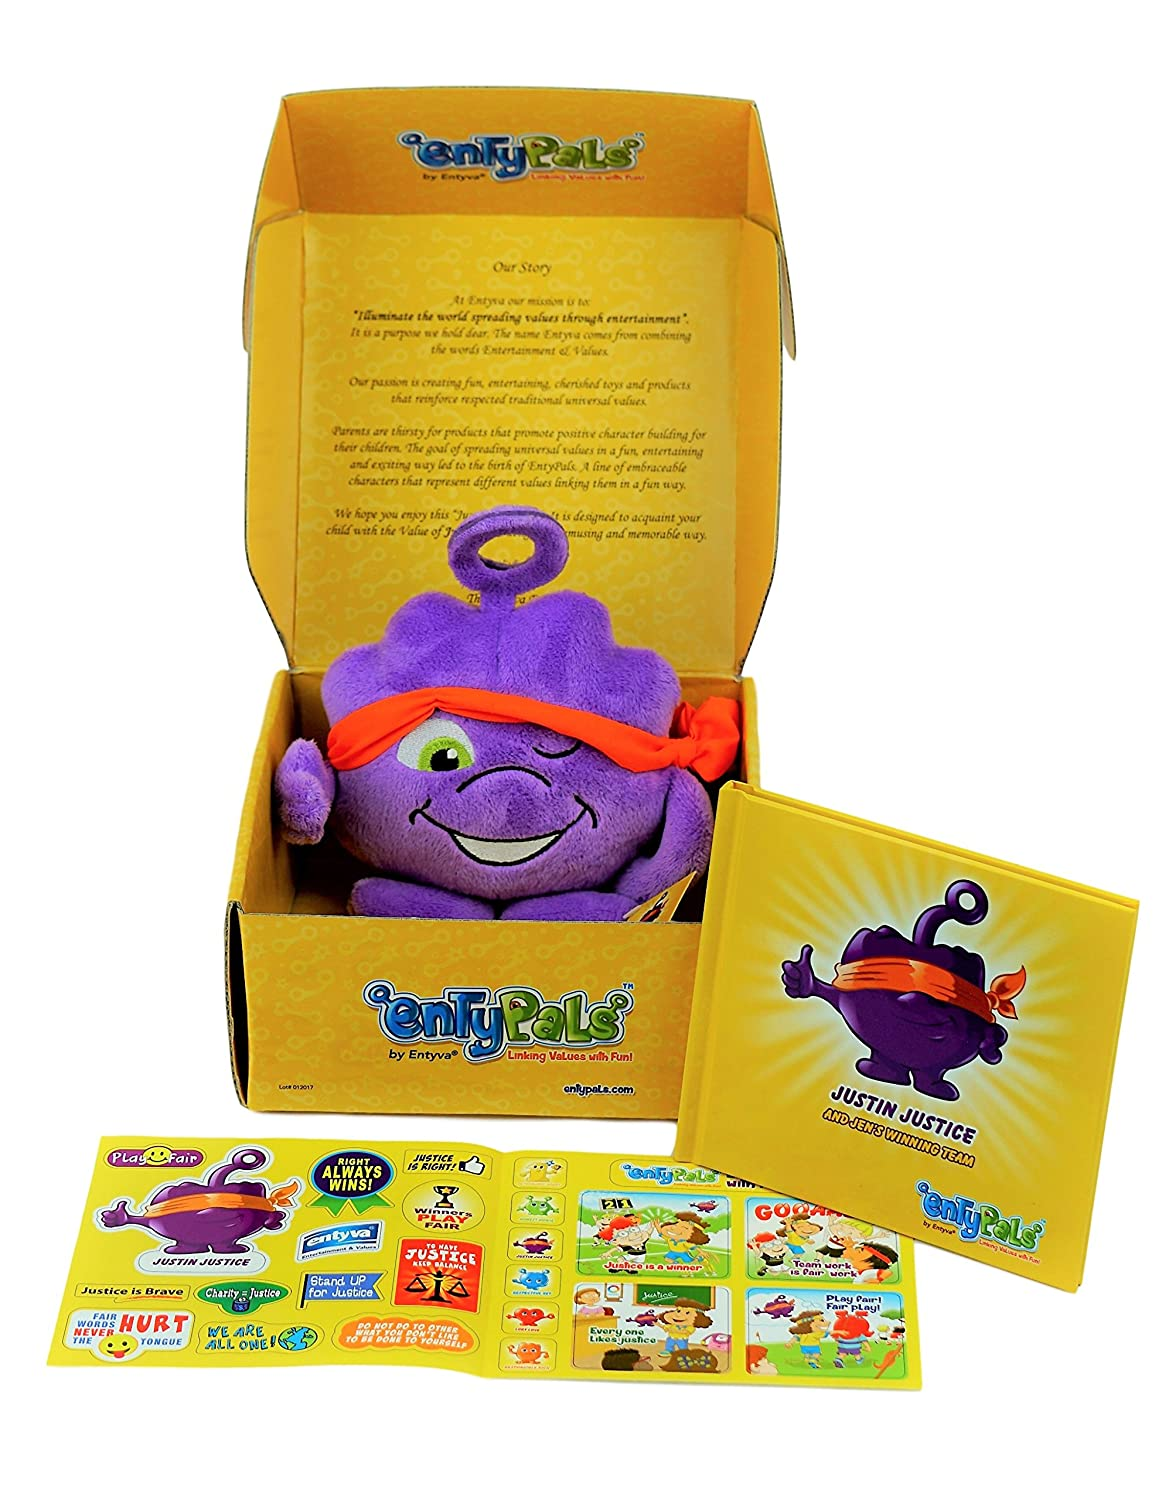 Learn The Value of Honesty in a Fun Way ENTYVA ENTYPALS Educational Book Plush and Stickers Set